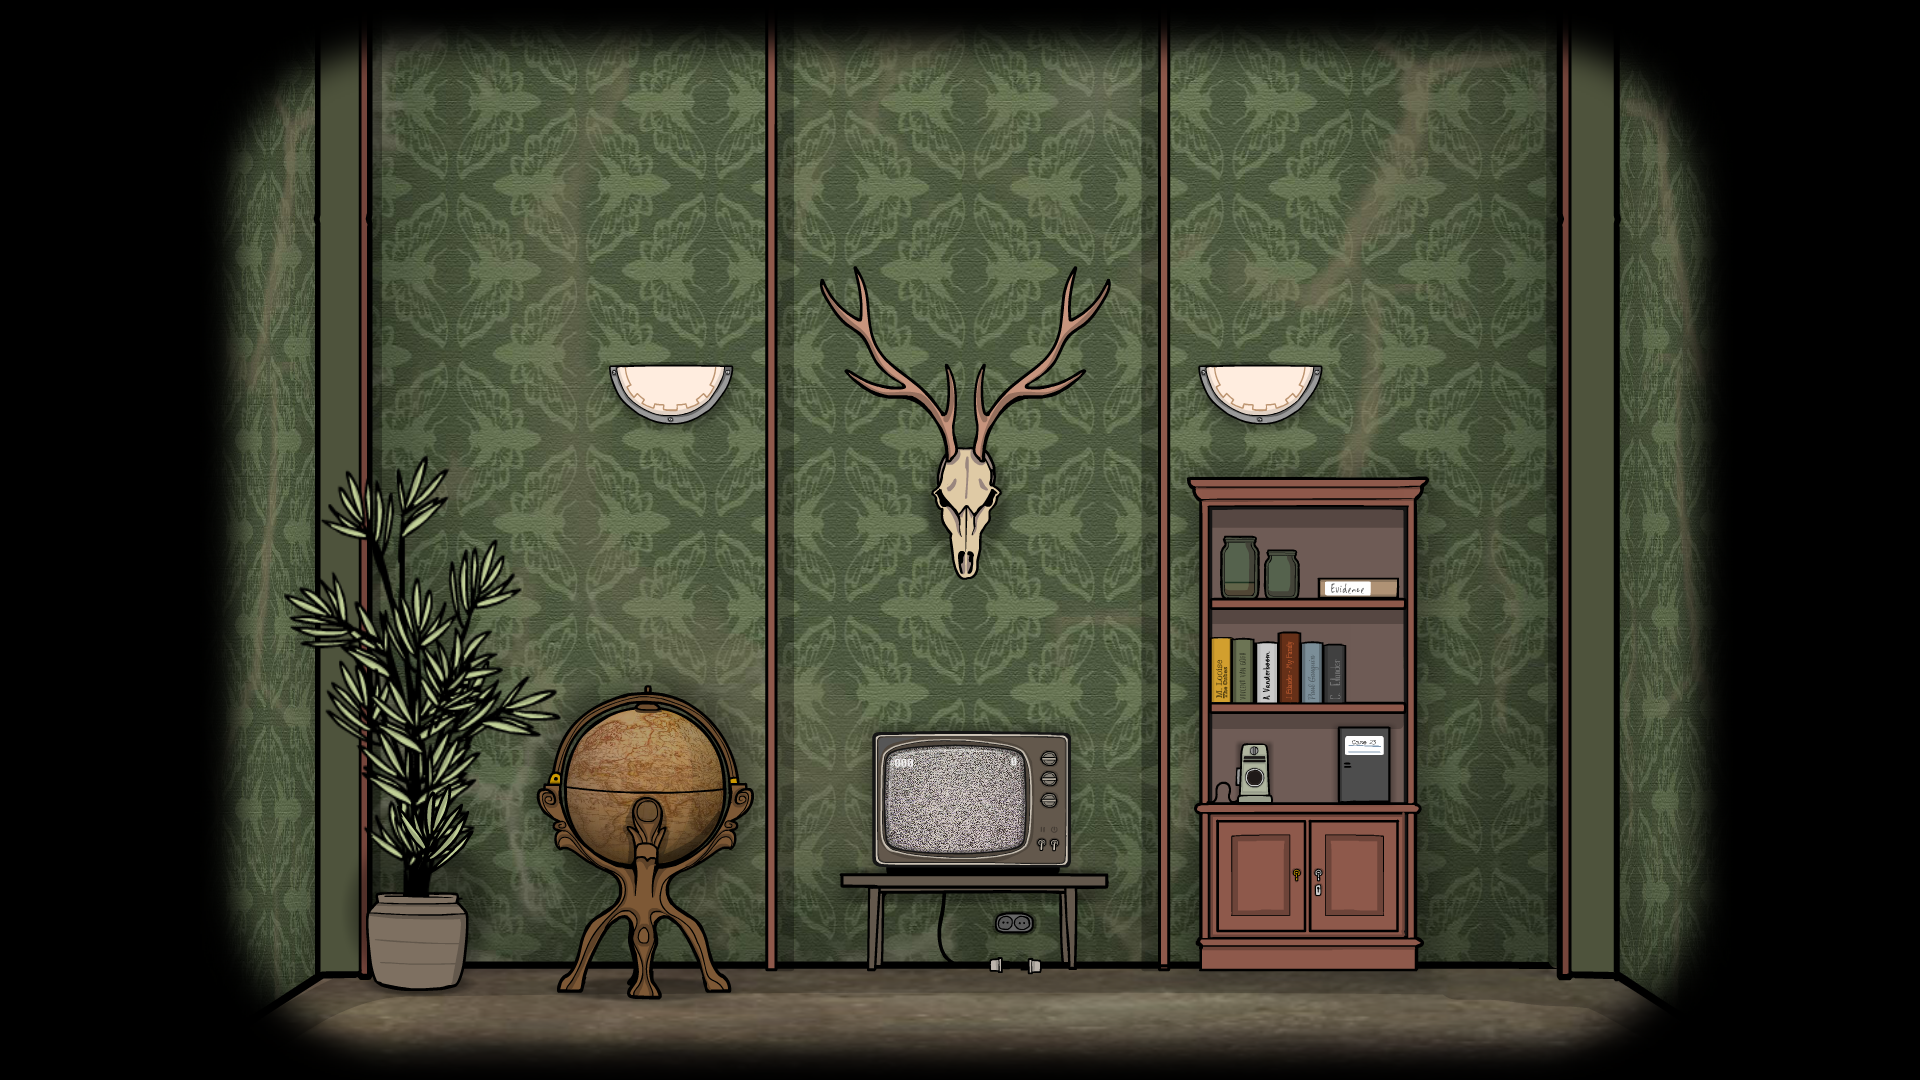 Cube Escape: Paradox by Rusty Lake